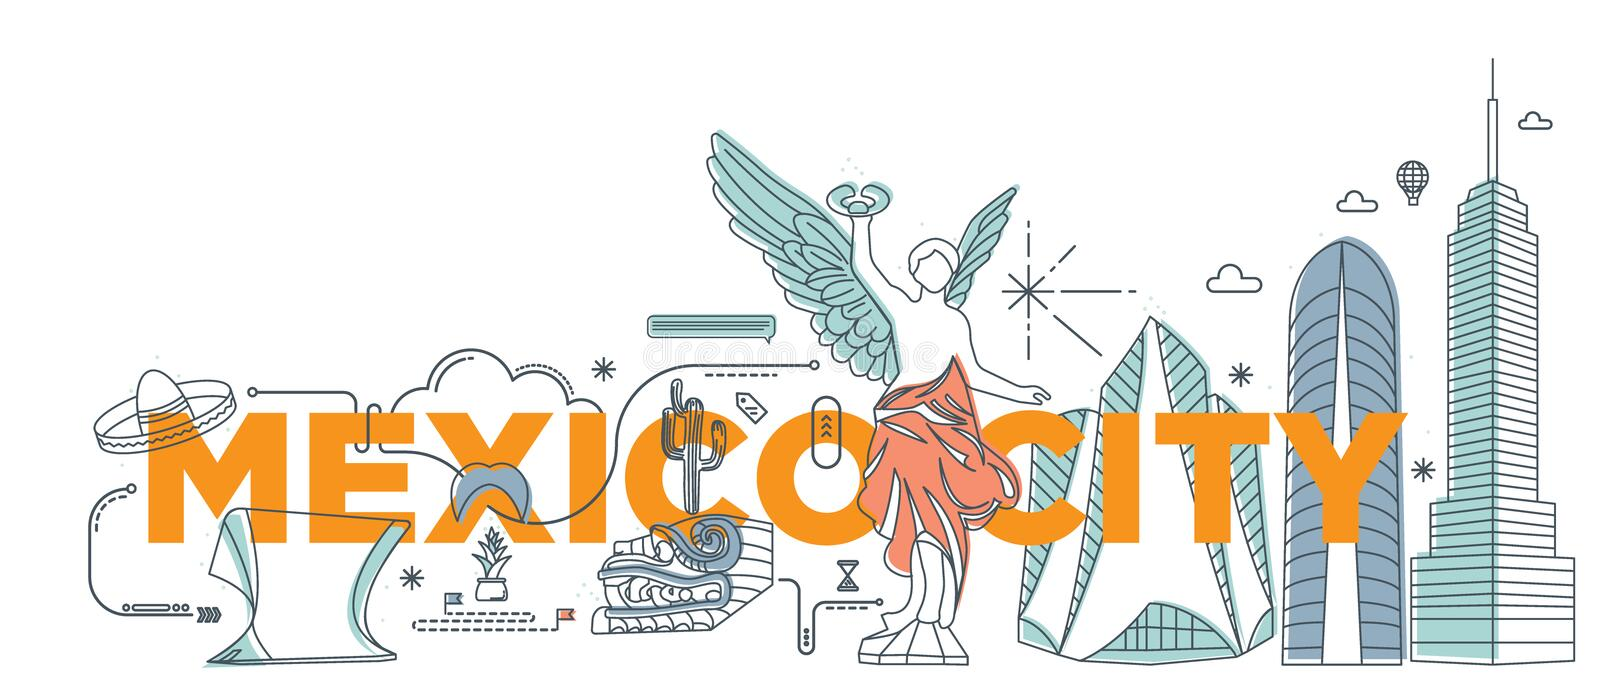 Typography word `Mexico City` branding technology concept. vector illustration